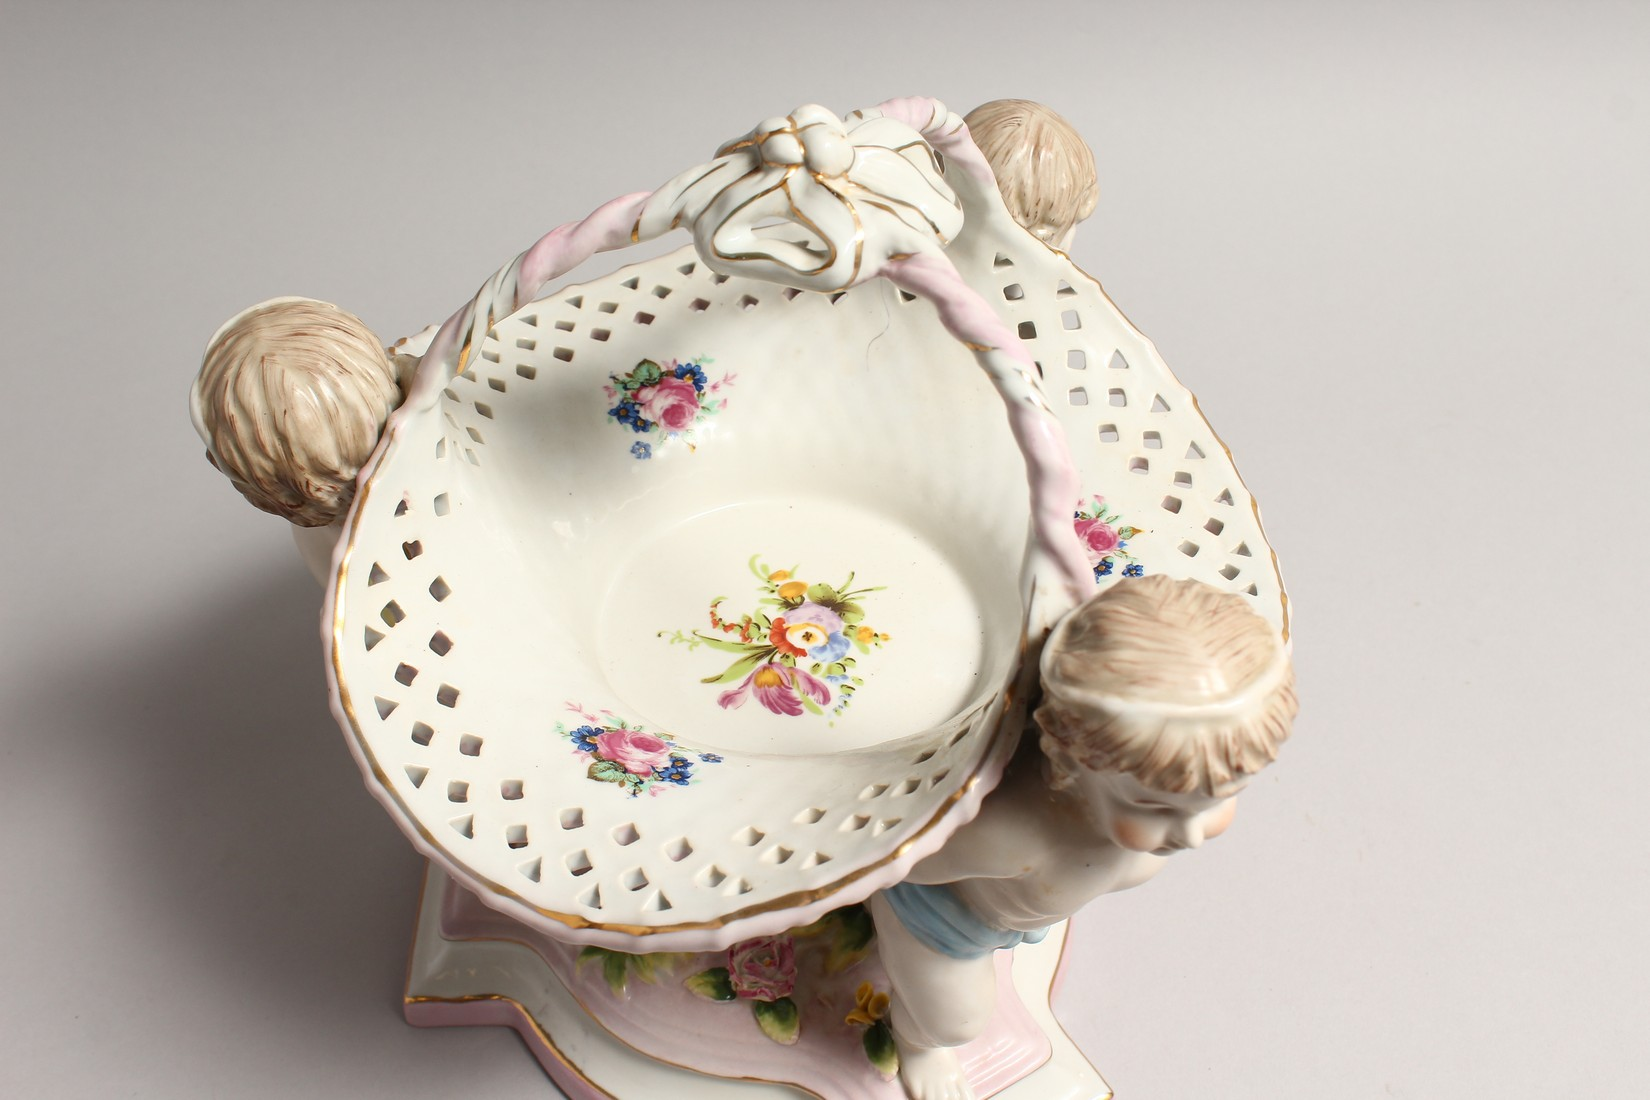 A MEISSEN STYLE PORCELAIN BASKET supported by three cupids. 10ins high - Image 2 of 5